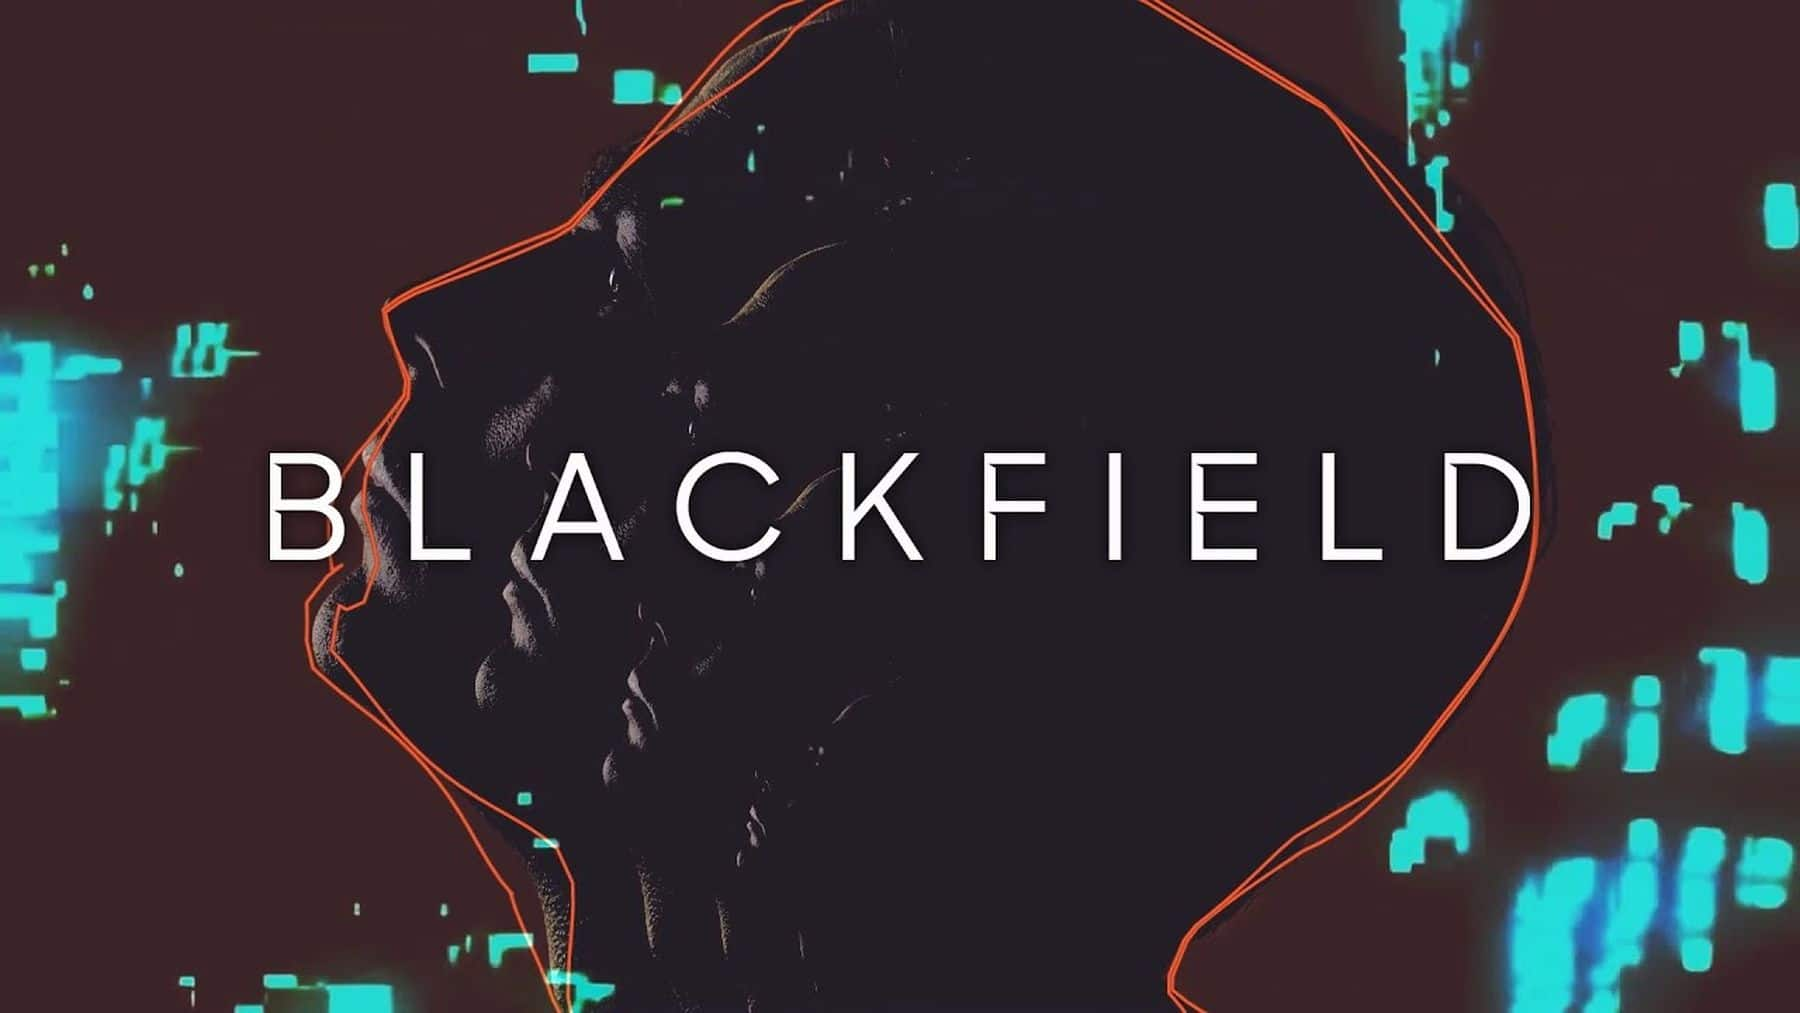 Blackfield - Under My Skin | Musik | Was is hier eigentlich los?